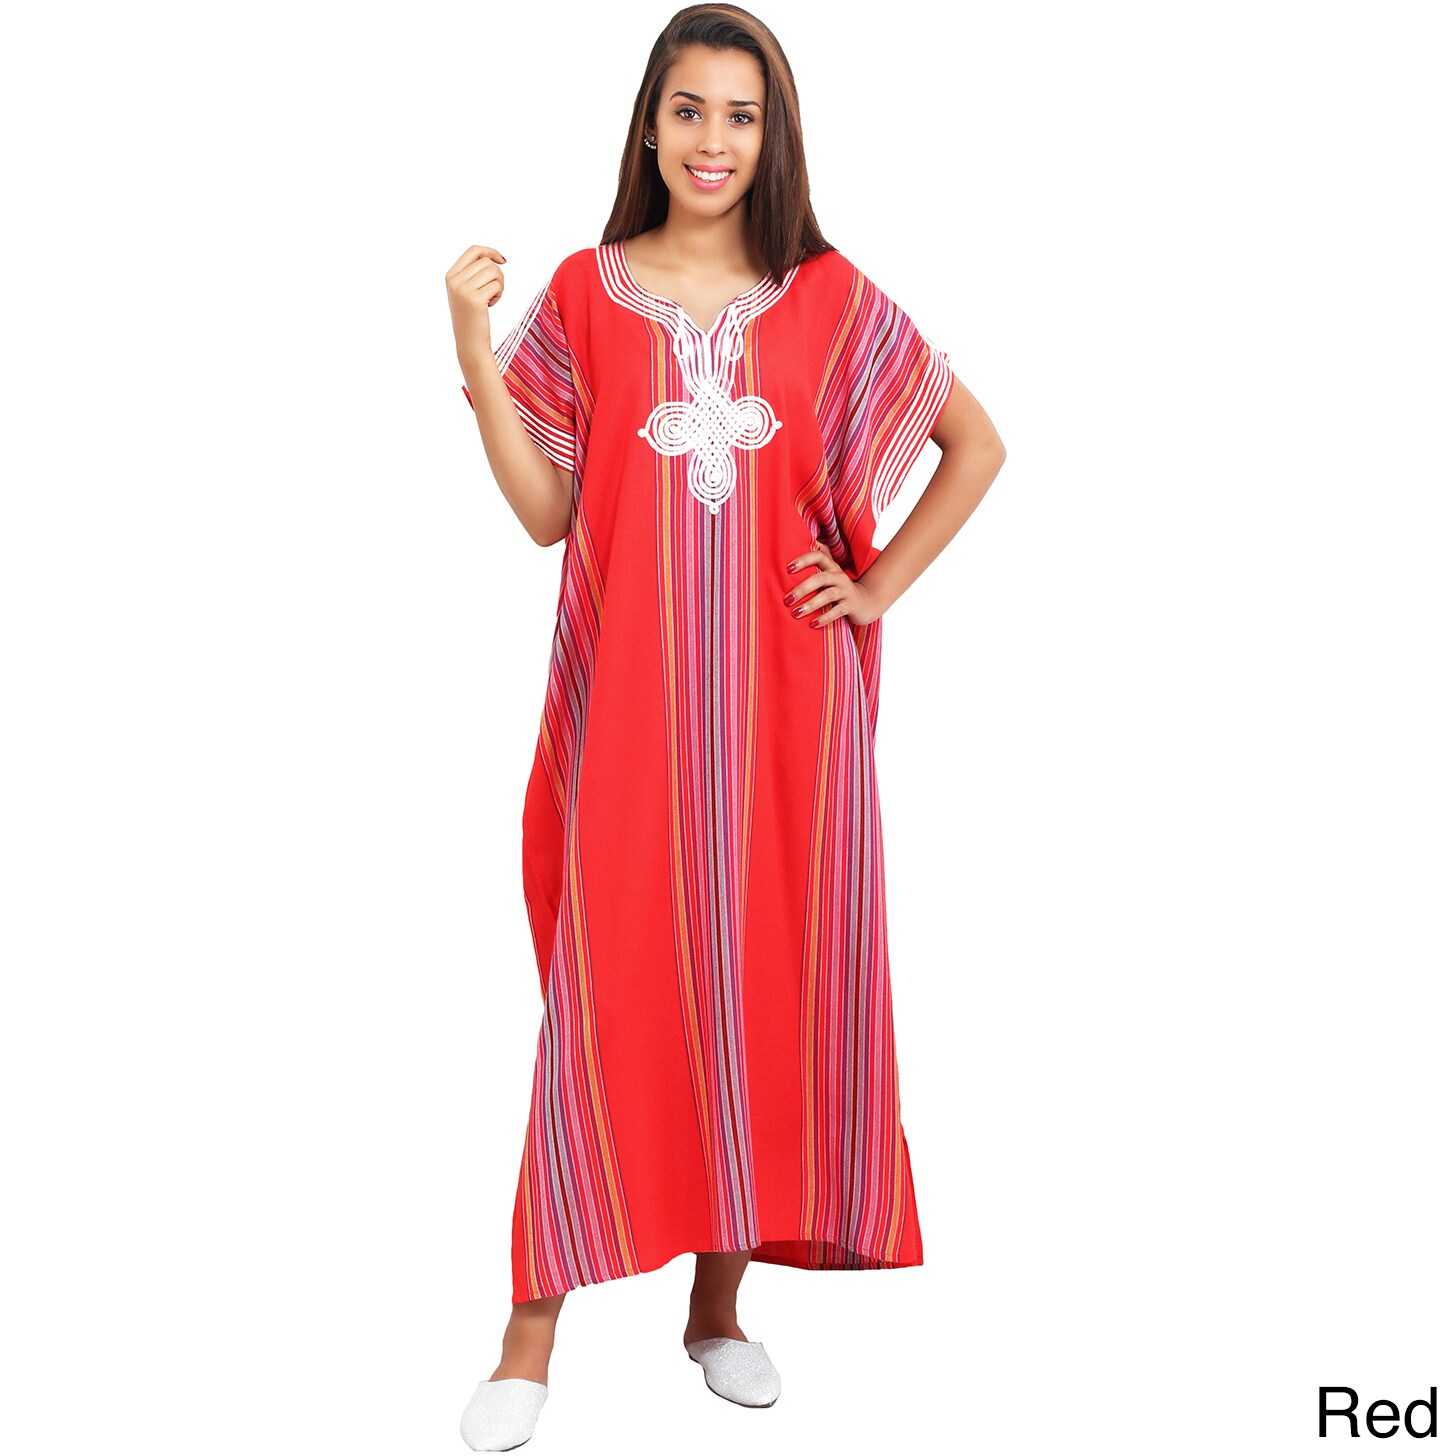 a965edca66e Shop Handmade Moroccan Women s Linen Long Caftan with Hand Embroidered Fiber  (Morocco) - Free Shipping On Orders Over  45 - Overstock - 9667844